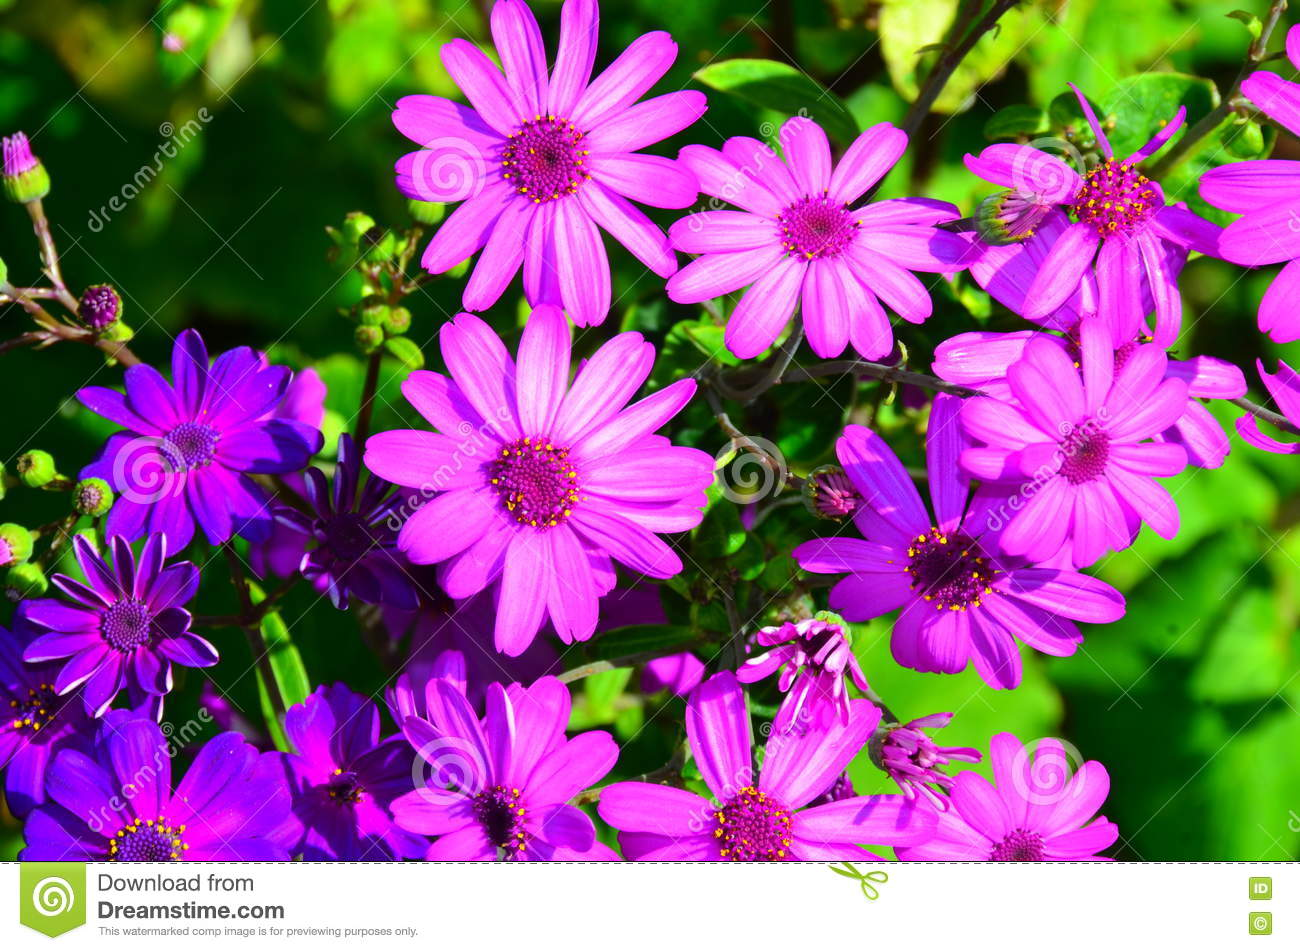 Daisy flower in garden stock photo image of petal plant 74395024 purple daisy flowers in new zealand garden symbolizes april birth flower meaning wholehearted modesty innocence mightylinksfo